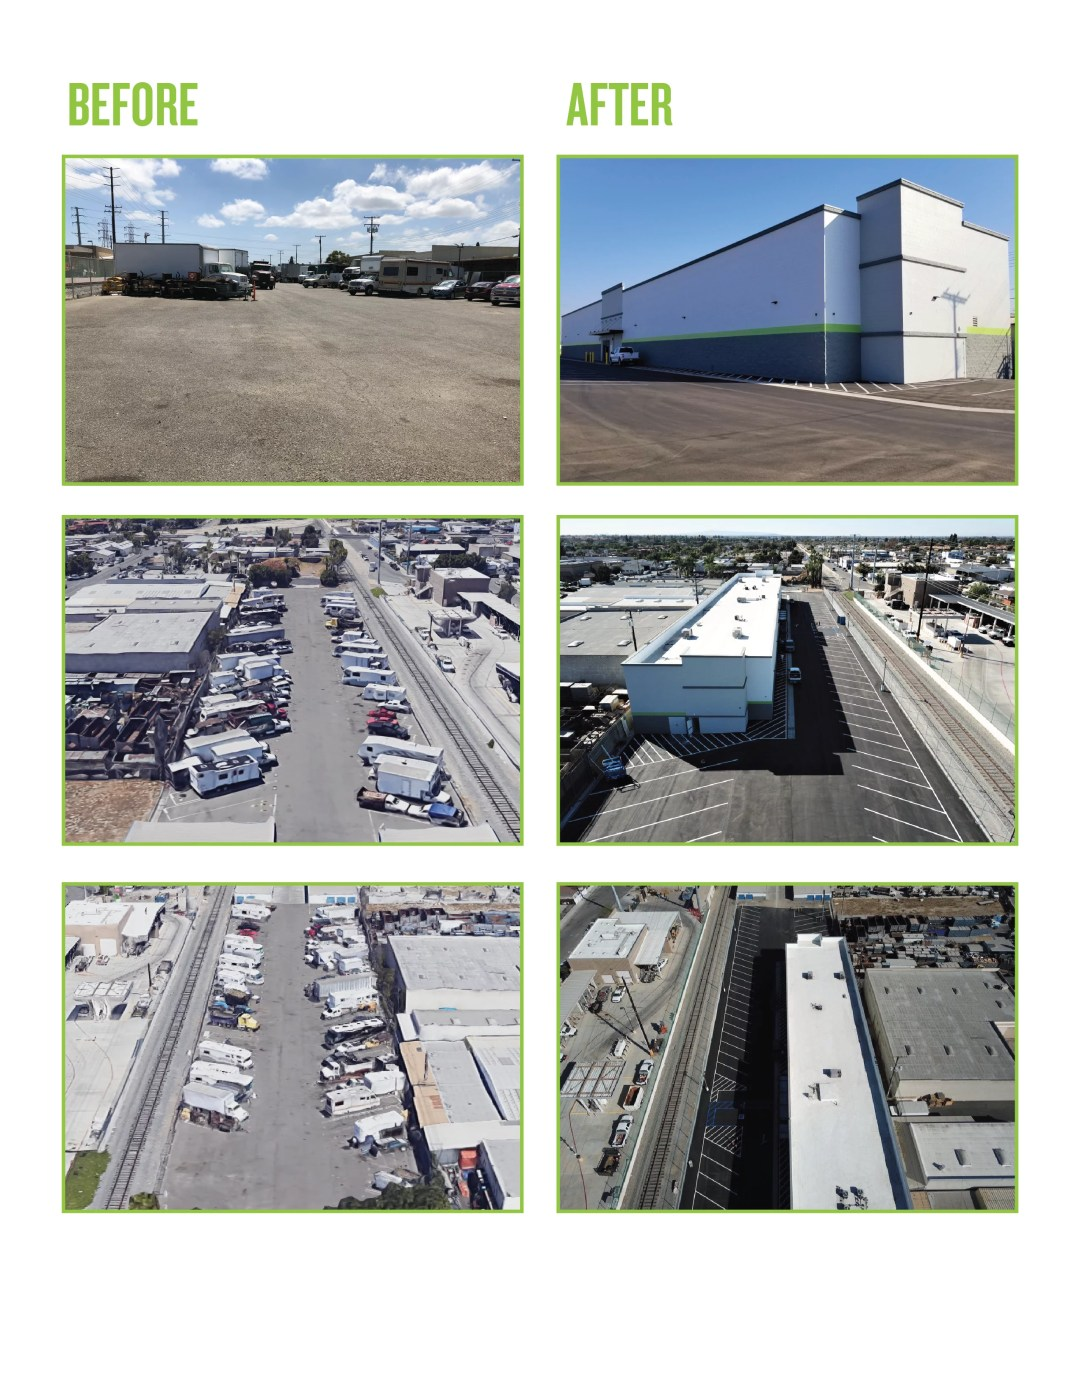 Before and After Photo of Self Storage Expansion Project